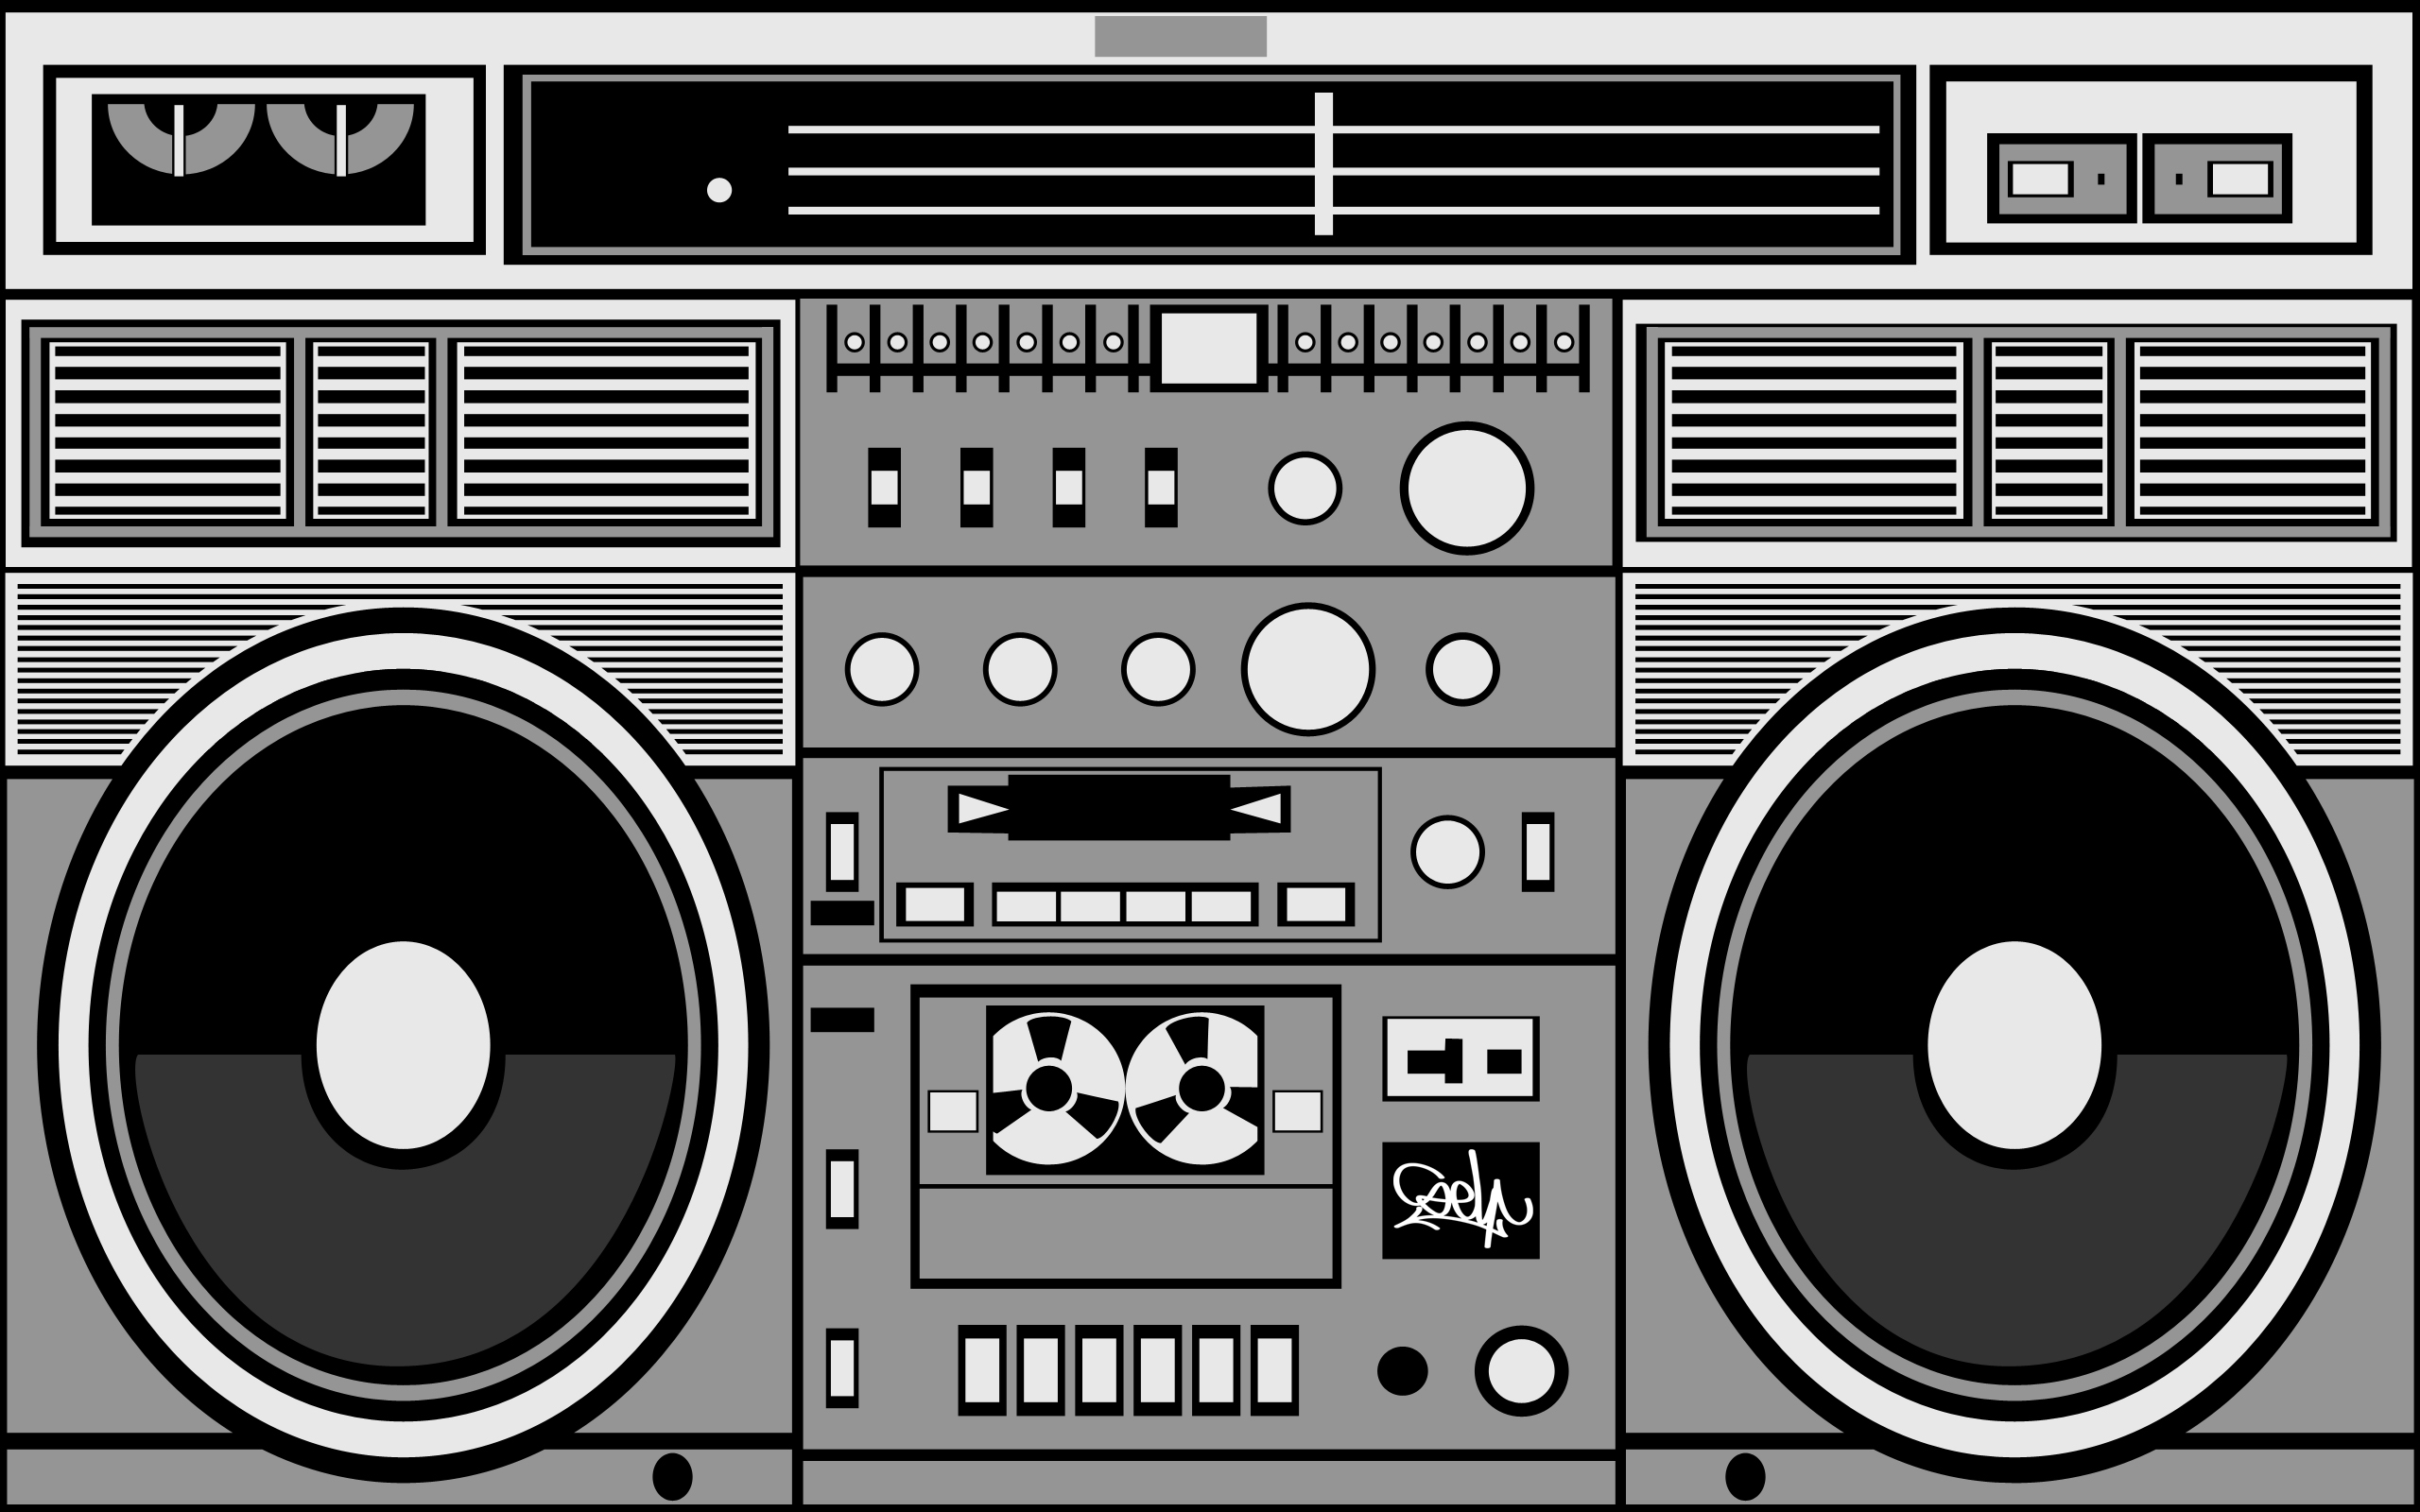 Old School Hip-Hop playlist featuring The Beastie Boys, Run-DMC, Whodini, Kool Moe Dee, Slick Rick, Biz Markie, The Fat Boys, LL Cool J and more (Playlist)